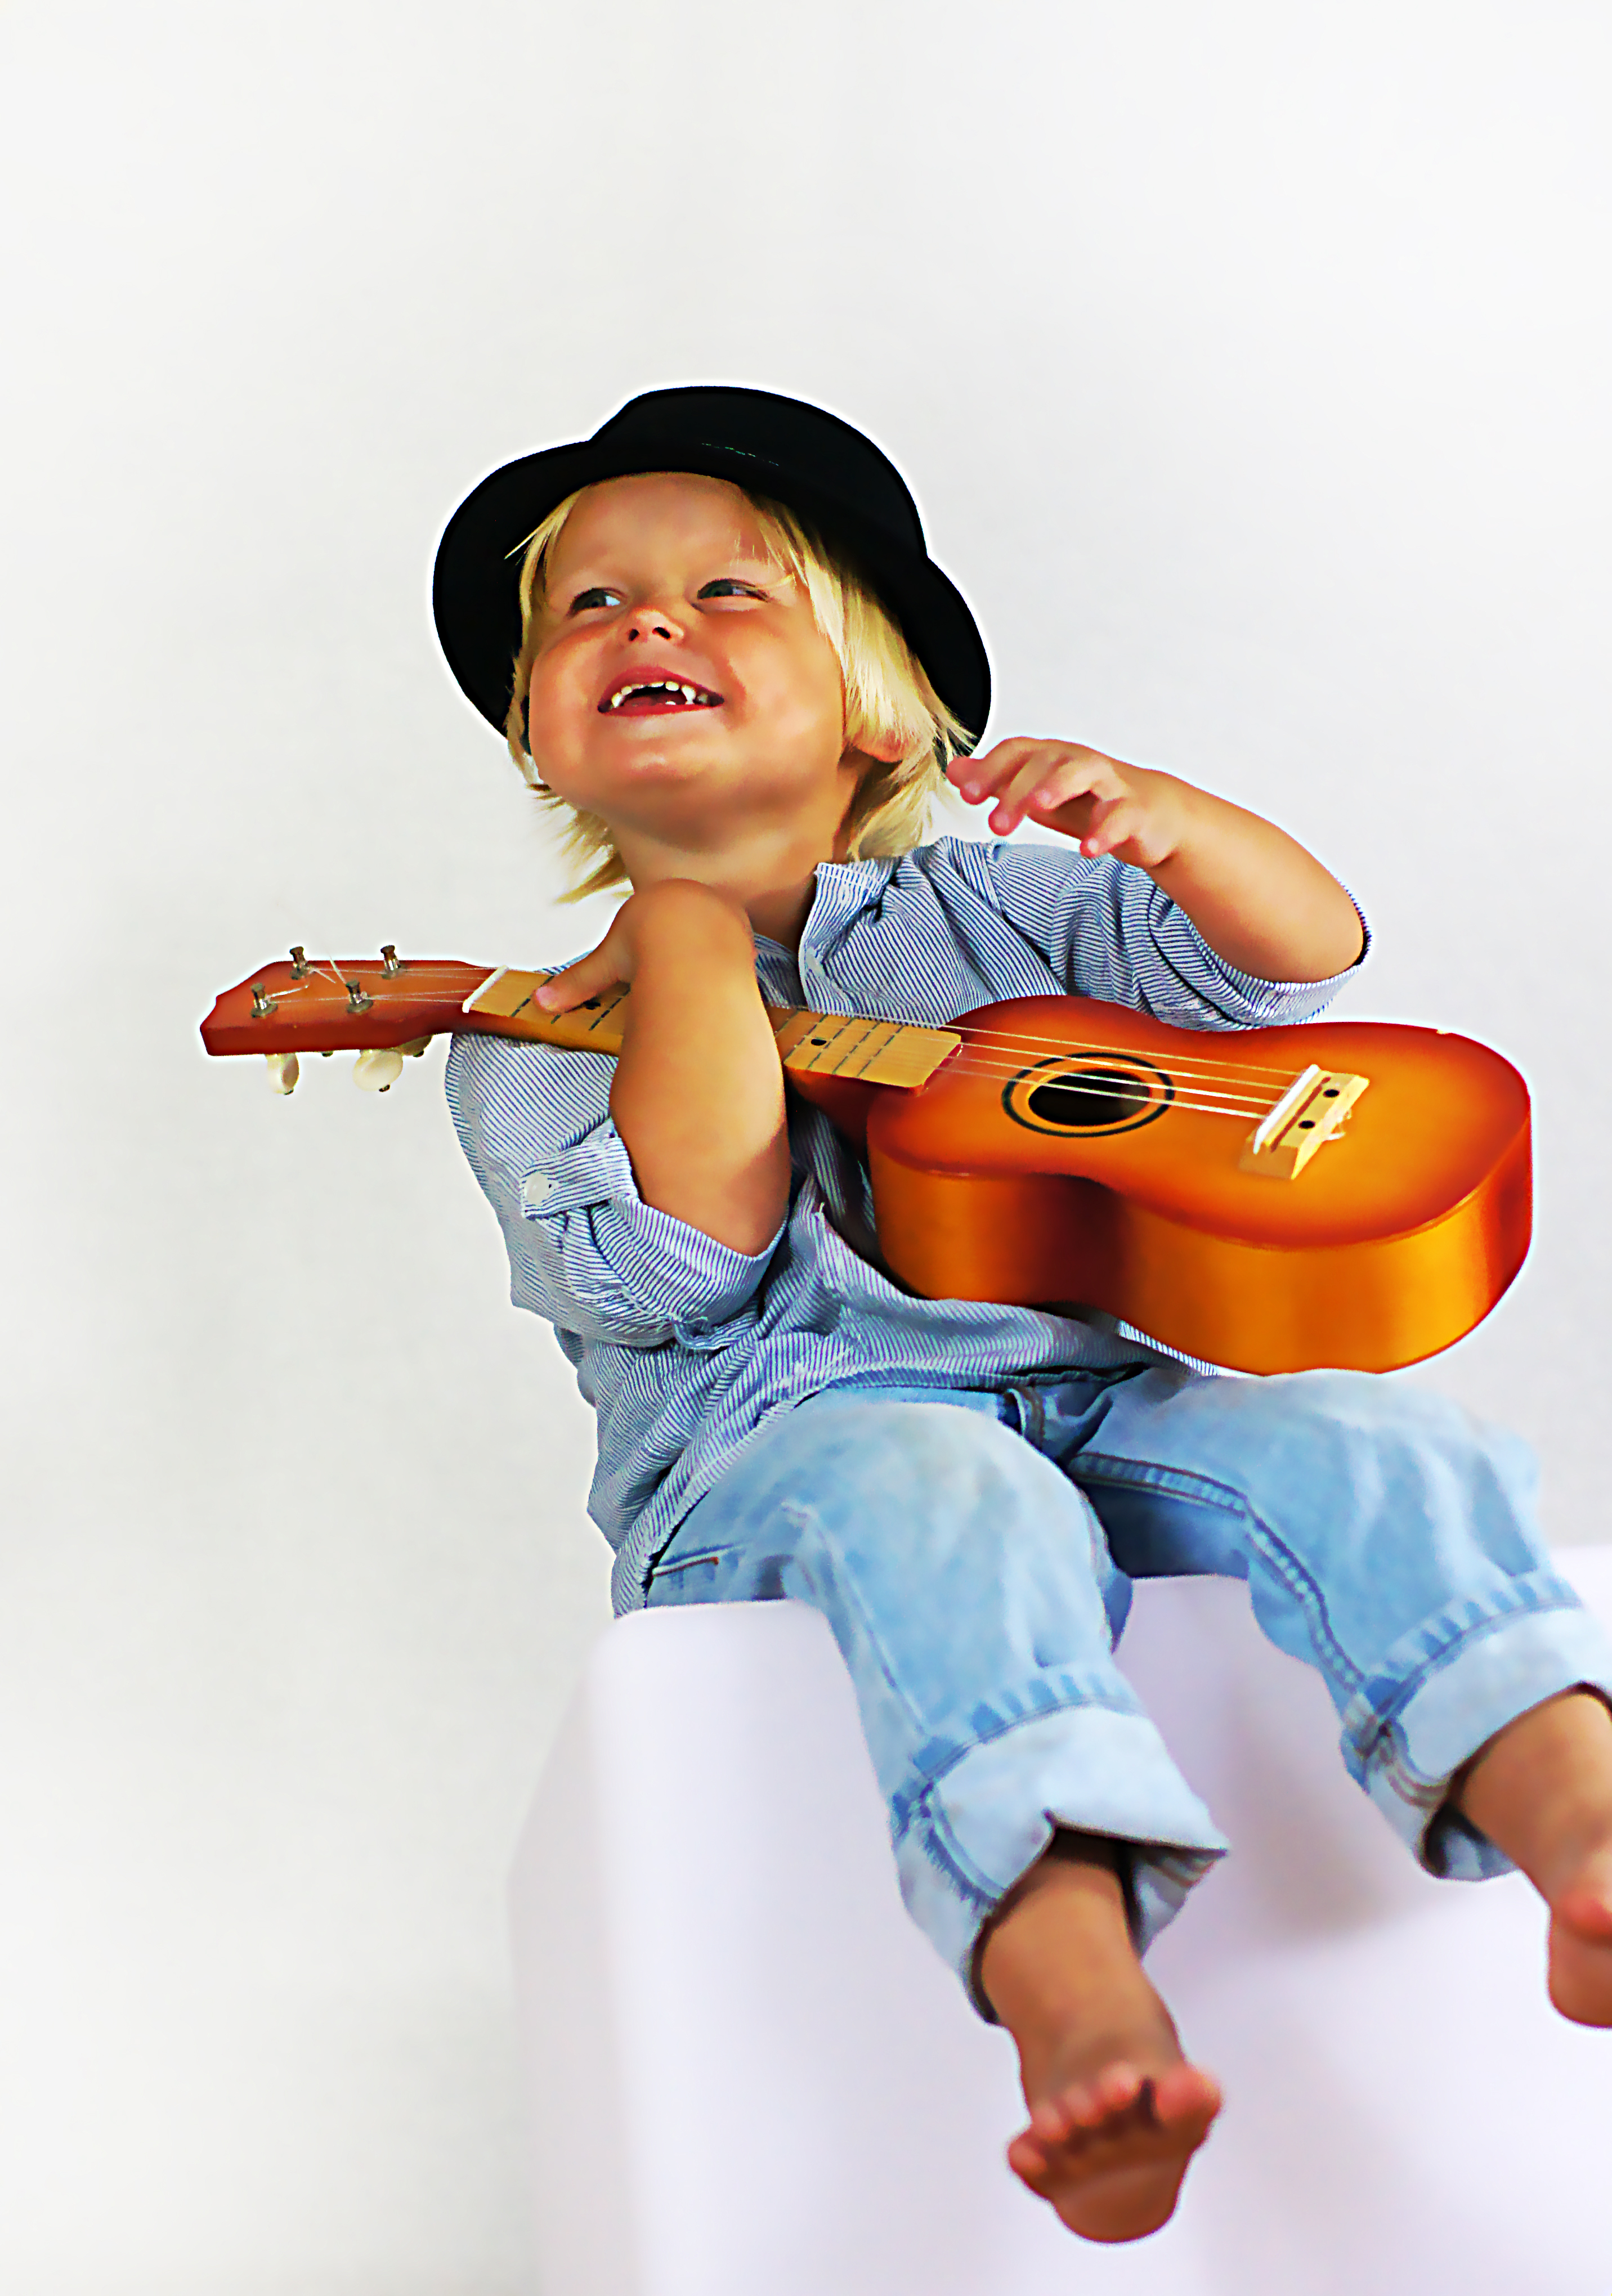 The boy with the ukulele - Der Junge mit der Ukulele